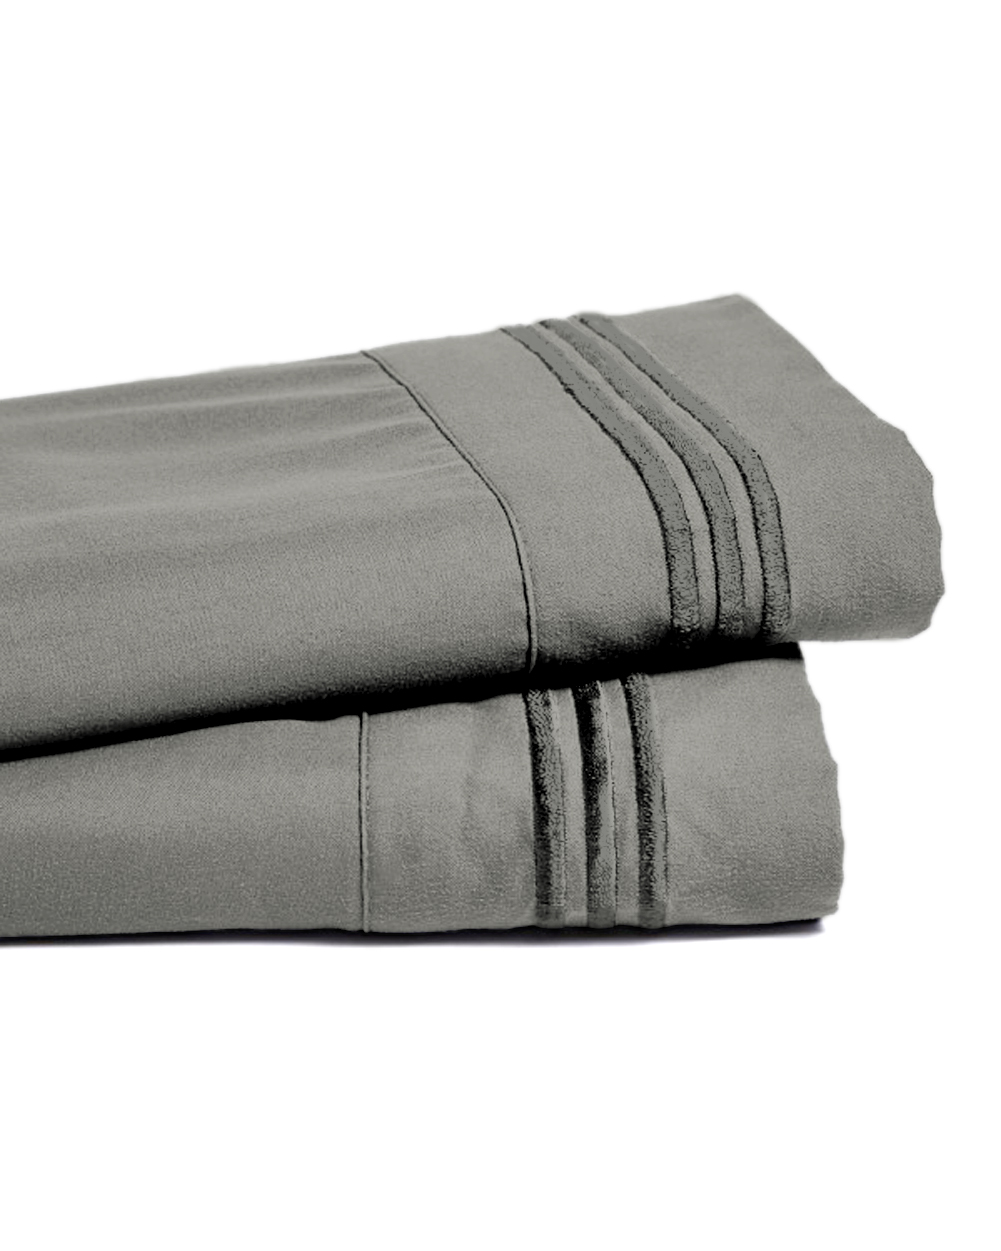 Deep Pocket Bamboo Bed Sheet - Luxury 2200 Embroidered Wrinkle, Fade and Stain Resistant Sheets - Gray Full Size